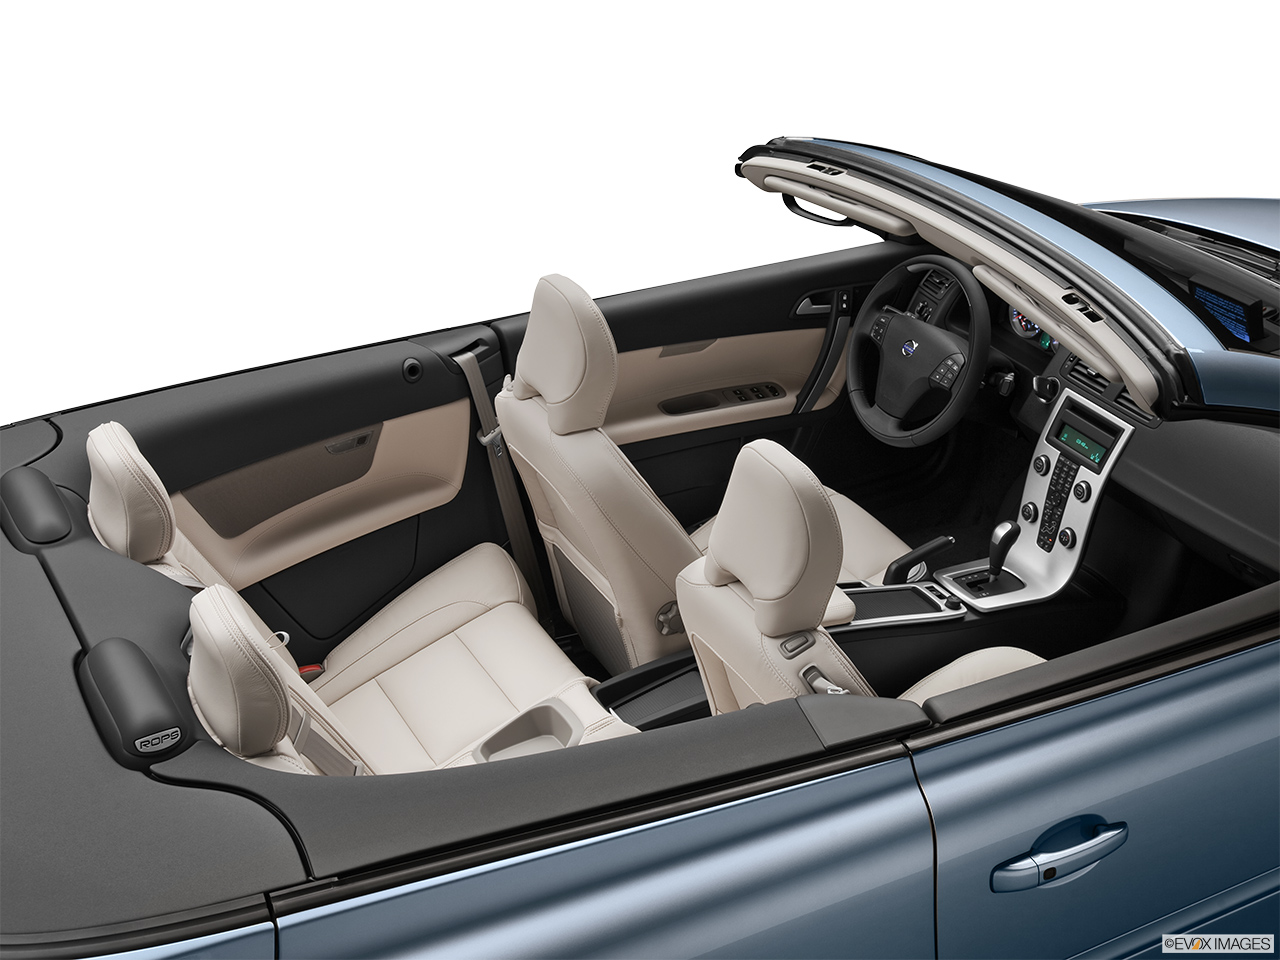 2013 Volvo C70 T5 Platinum Convertible Hero (high from passenger, looking down into interior).